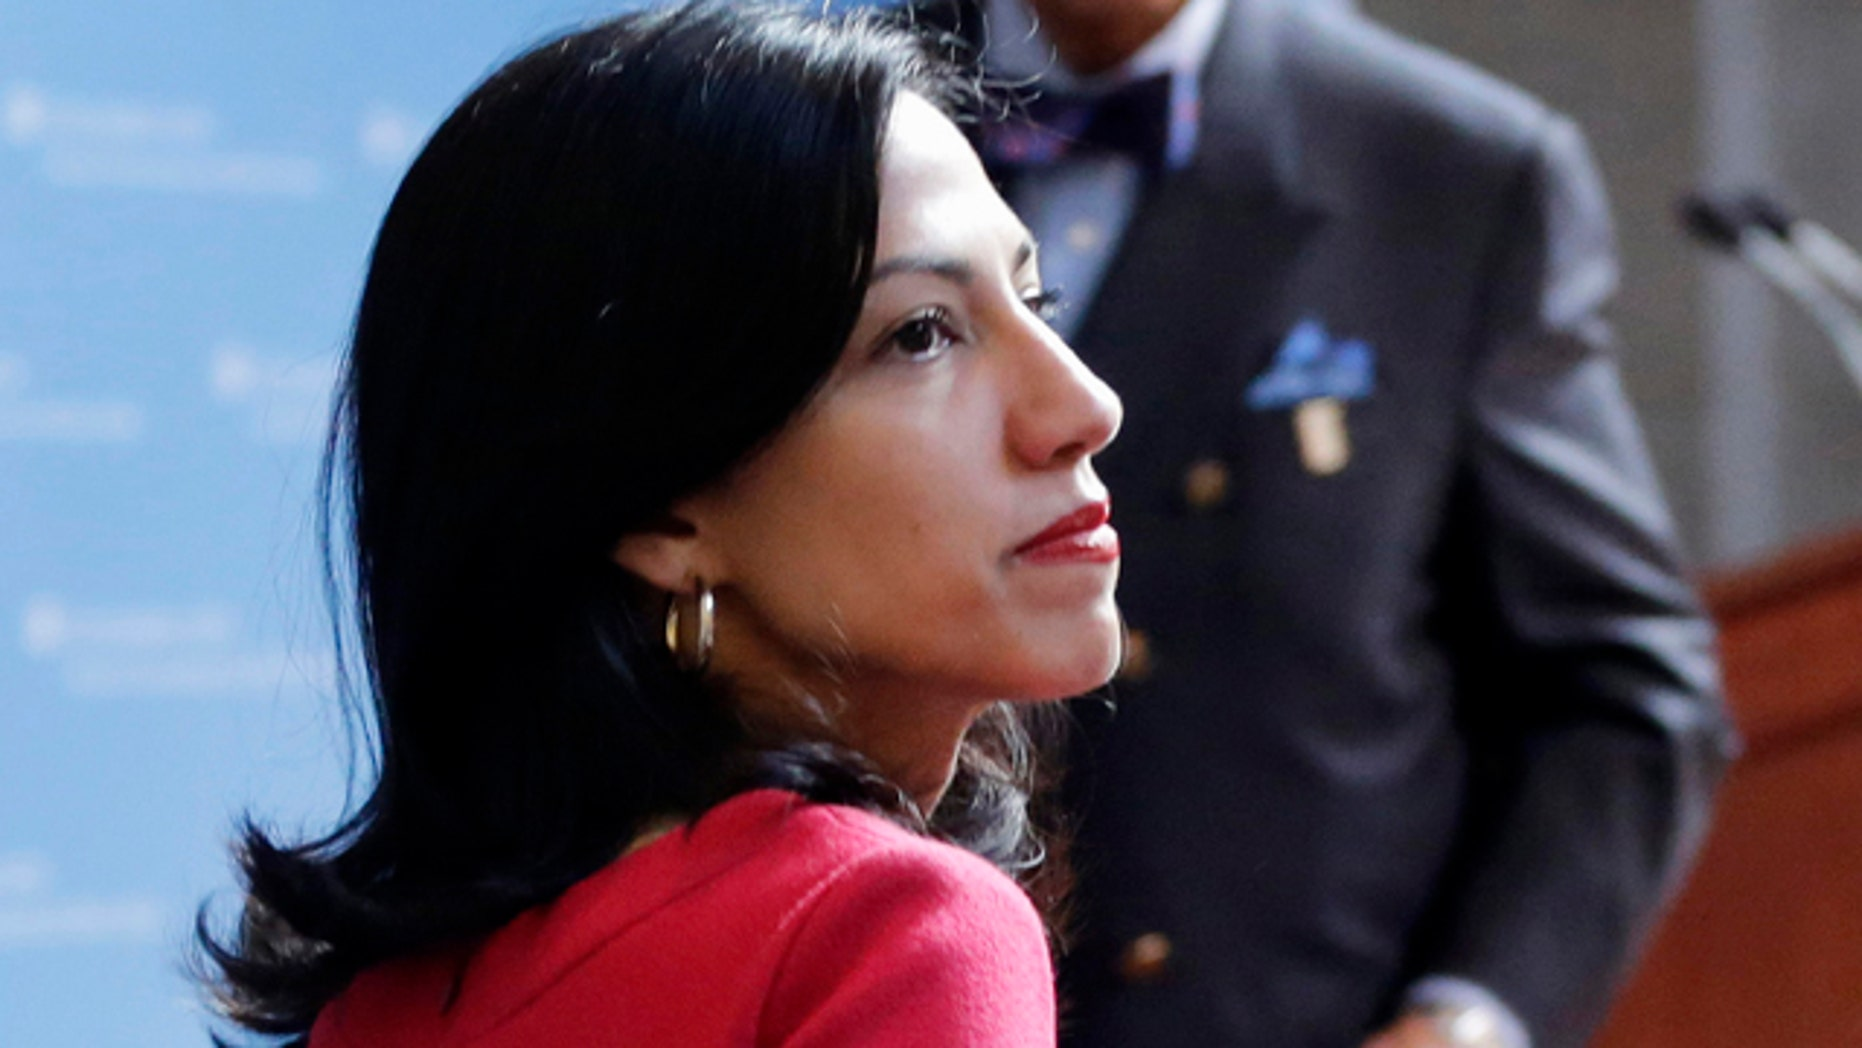 FILE - In this April 29, 2015 file photo, Huma Abedin is seen in New York. (AP Photo/Mark Lennihan, File)